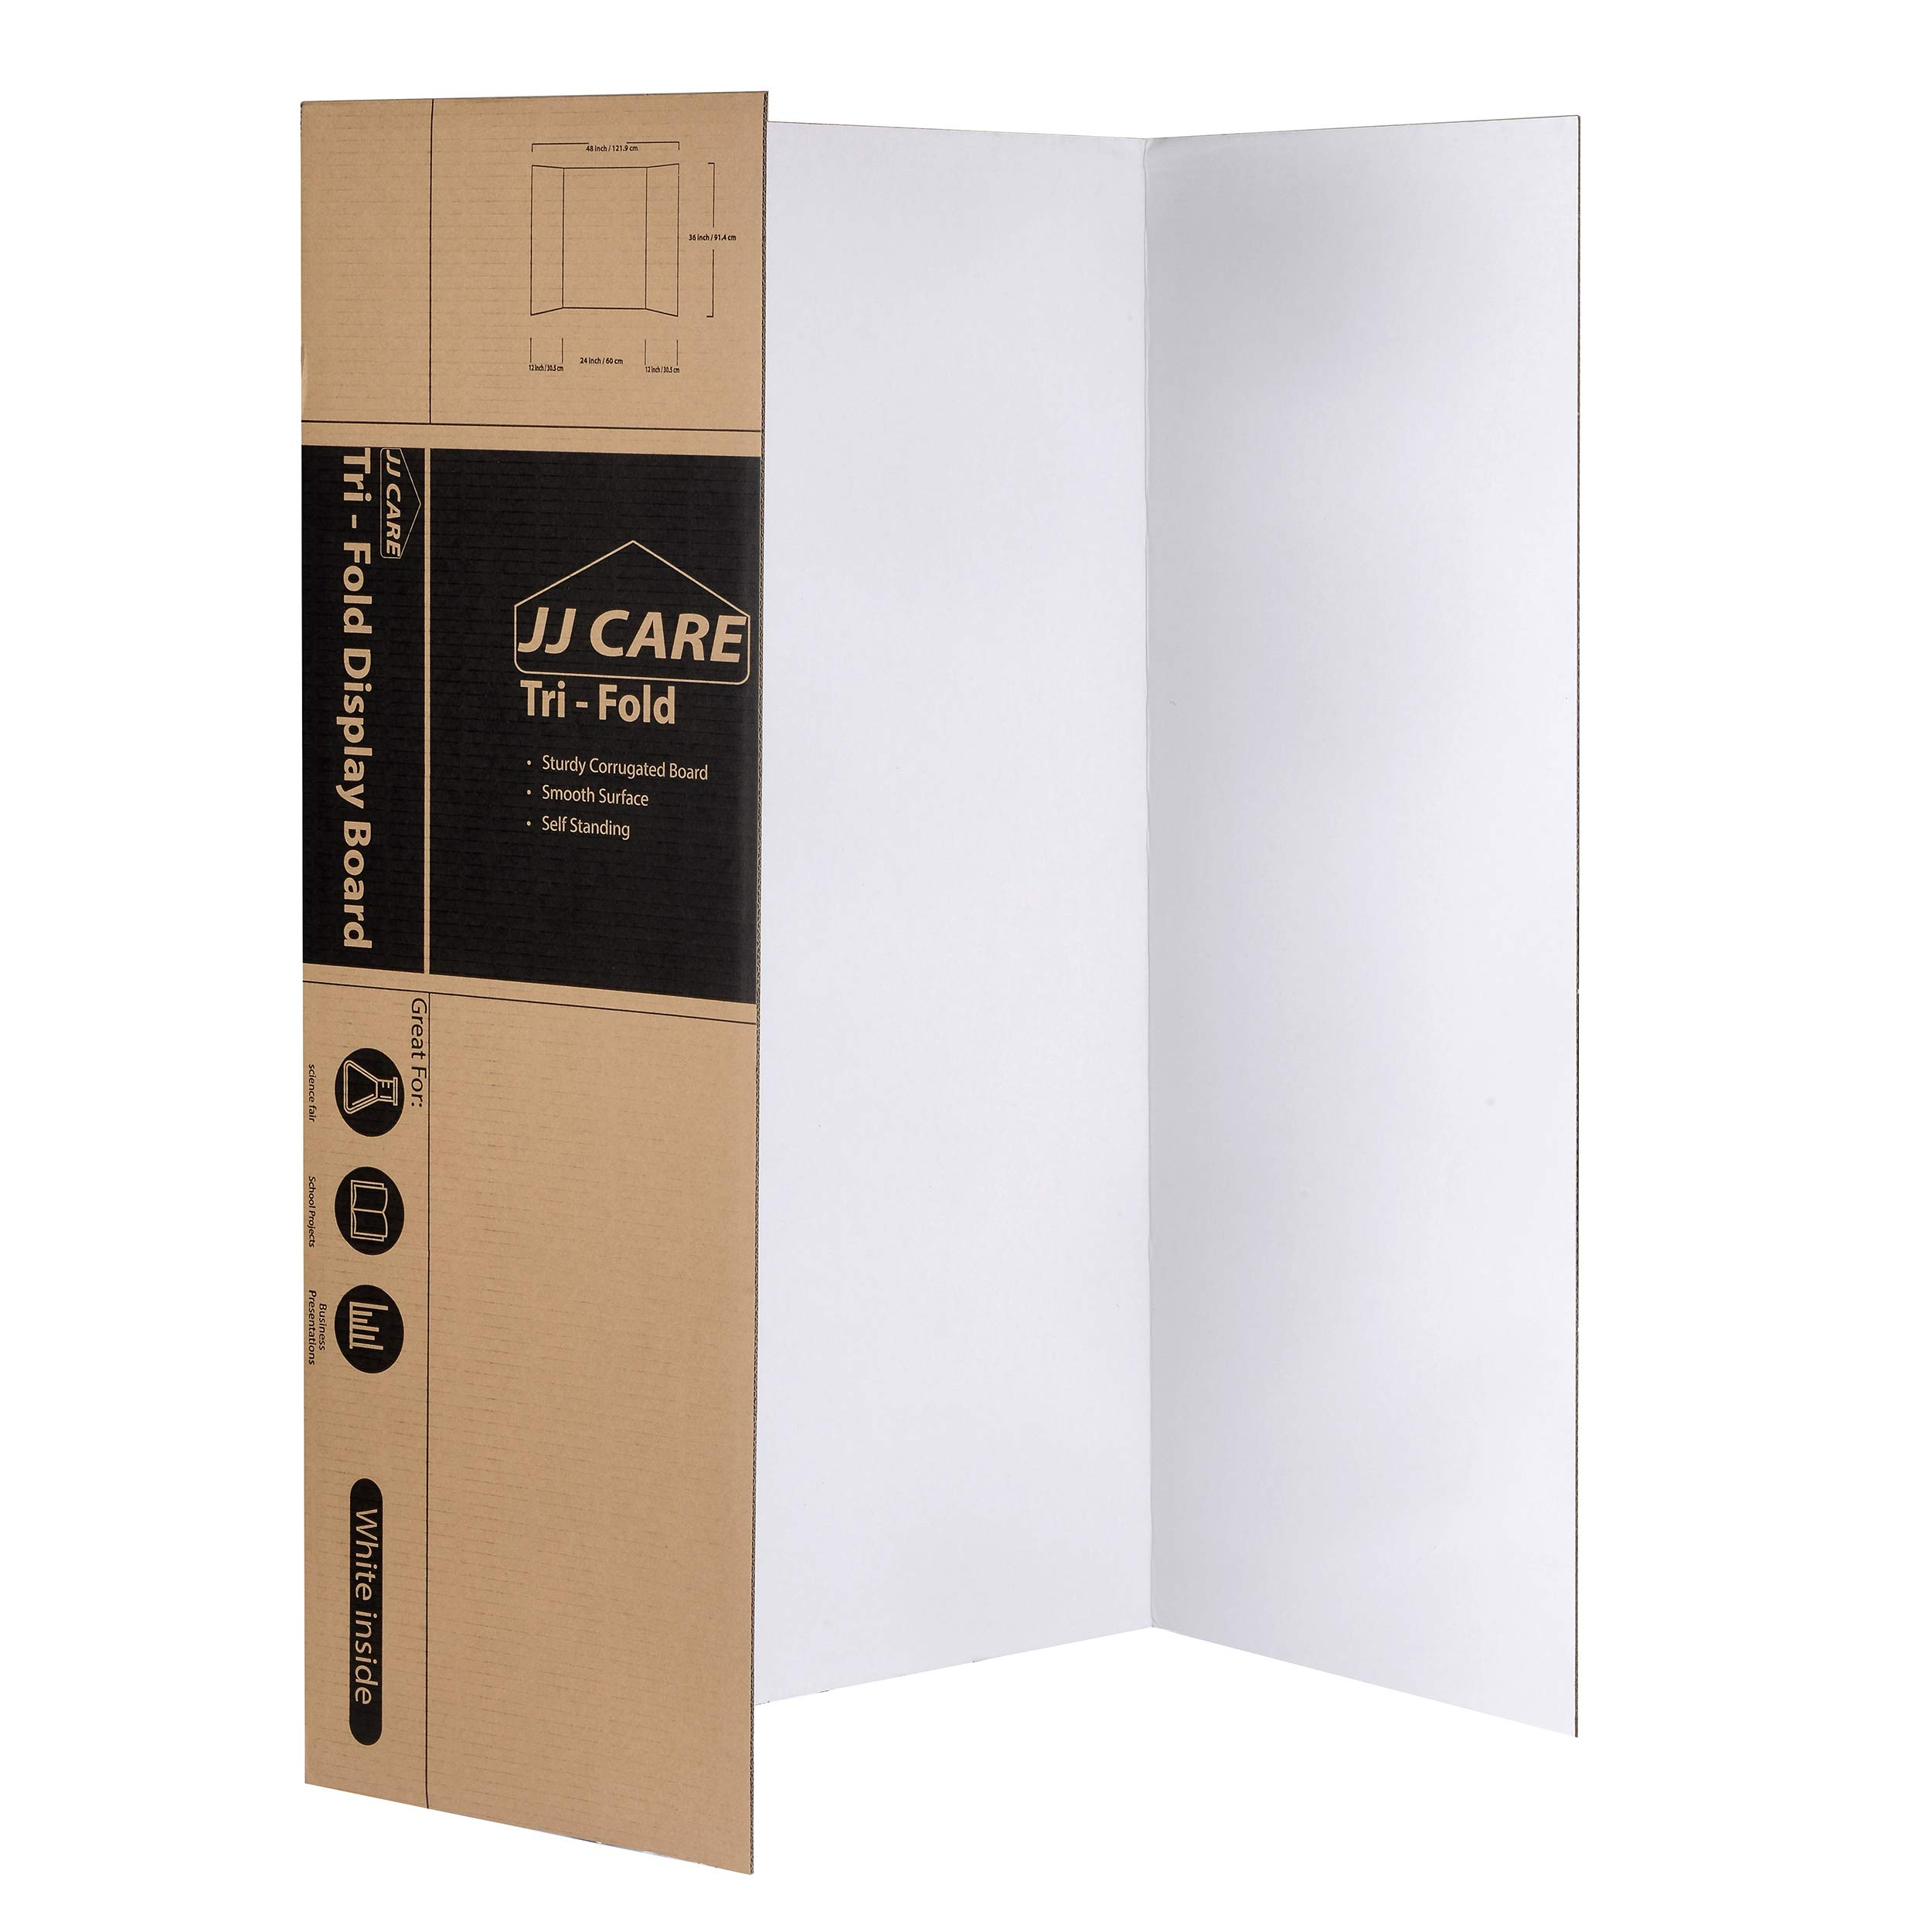 [Heavy Duty] 36'' x 48'' Trifold Poster Board; Corrugated Cardboard Panel; Presentation Board for Art Projects and Science Fair Board by JJ Care